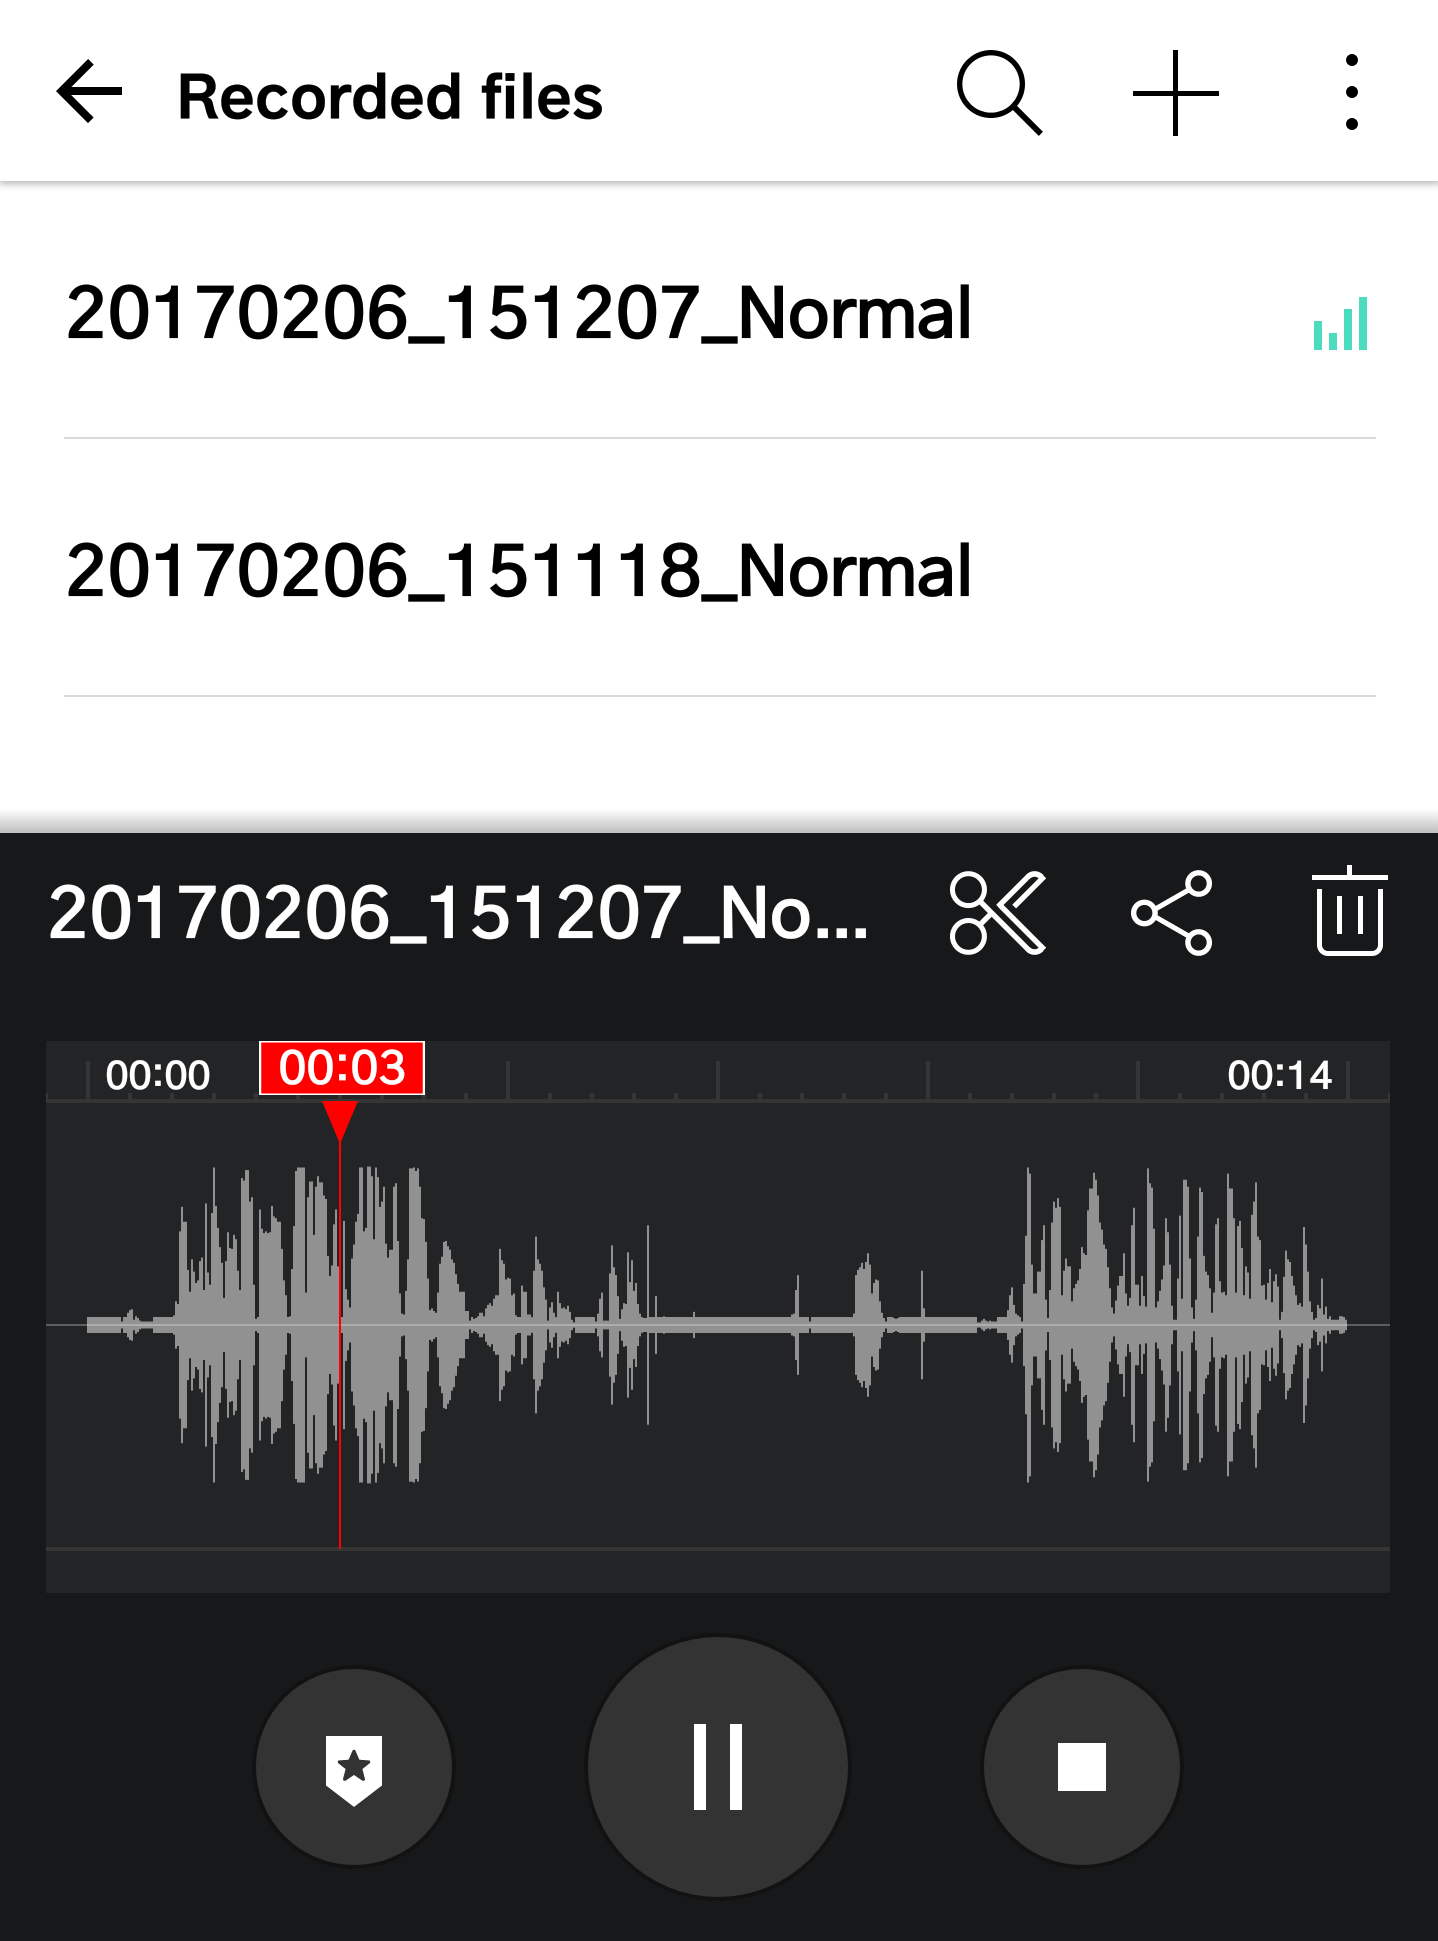 android hd audio recorder, with recordings listed